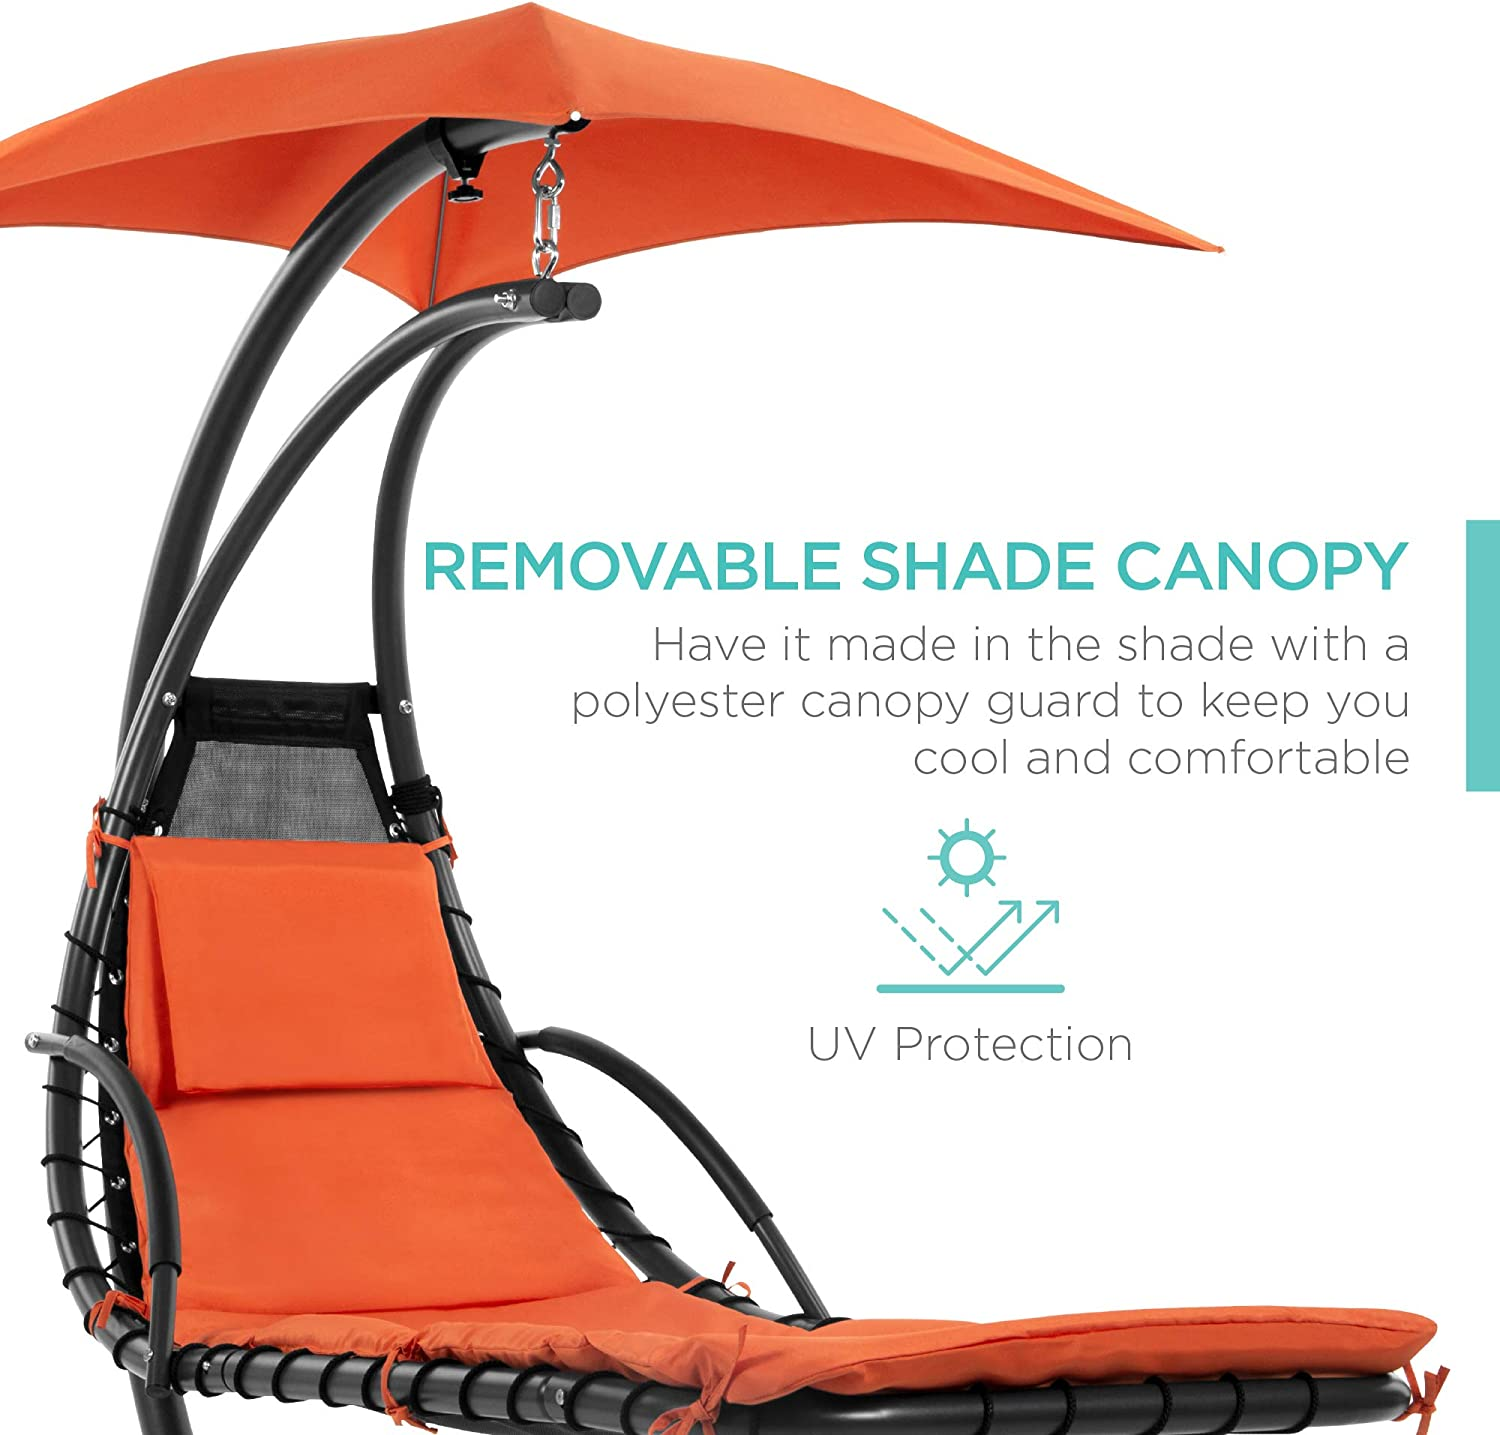 Best Choice Products Helicopter Swing Hammock Chair - Orange